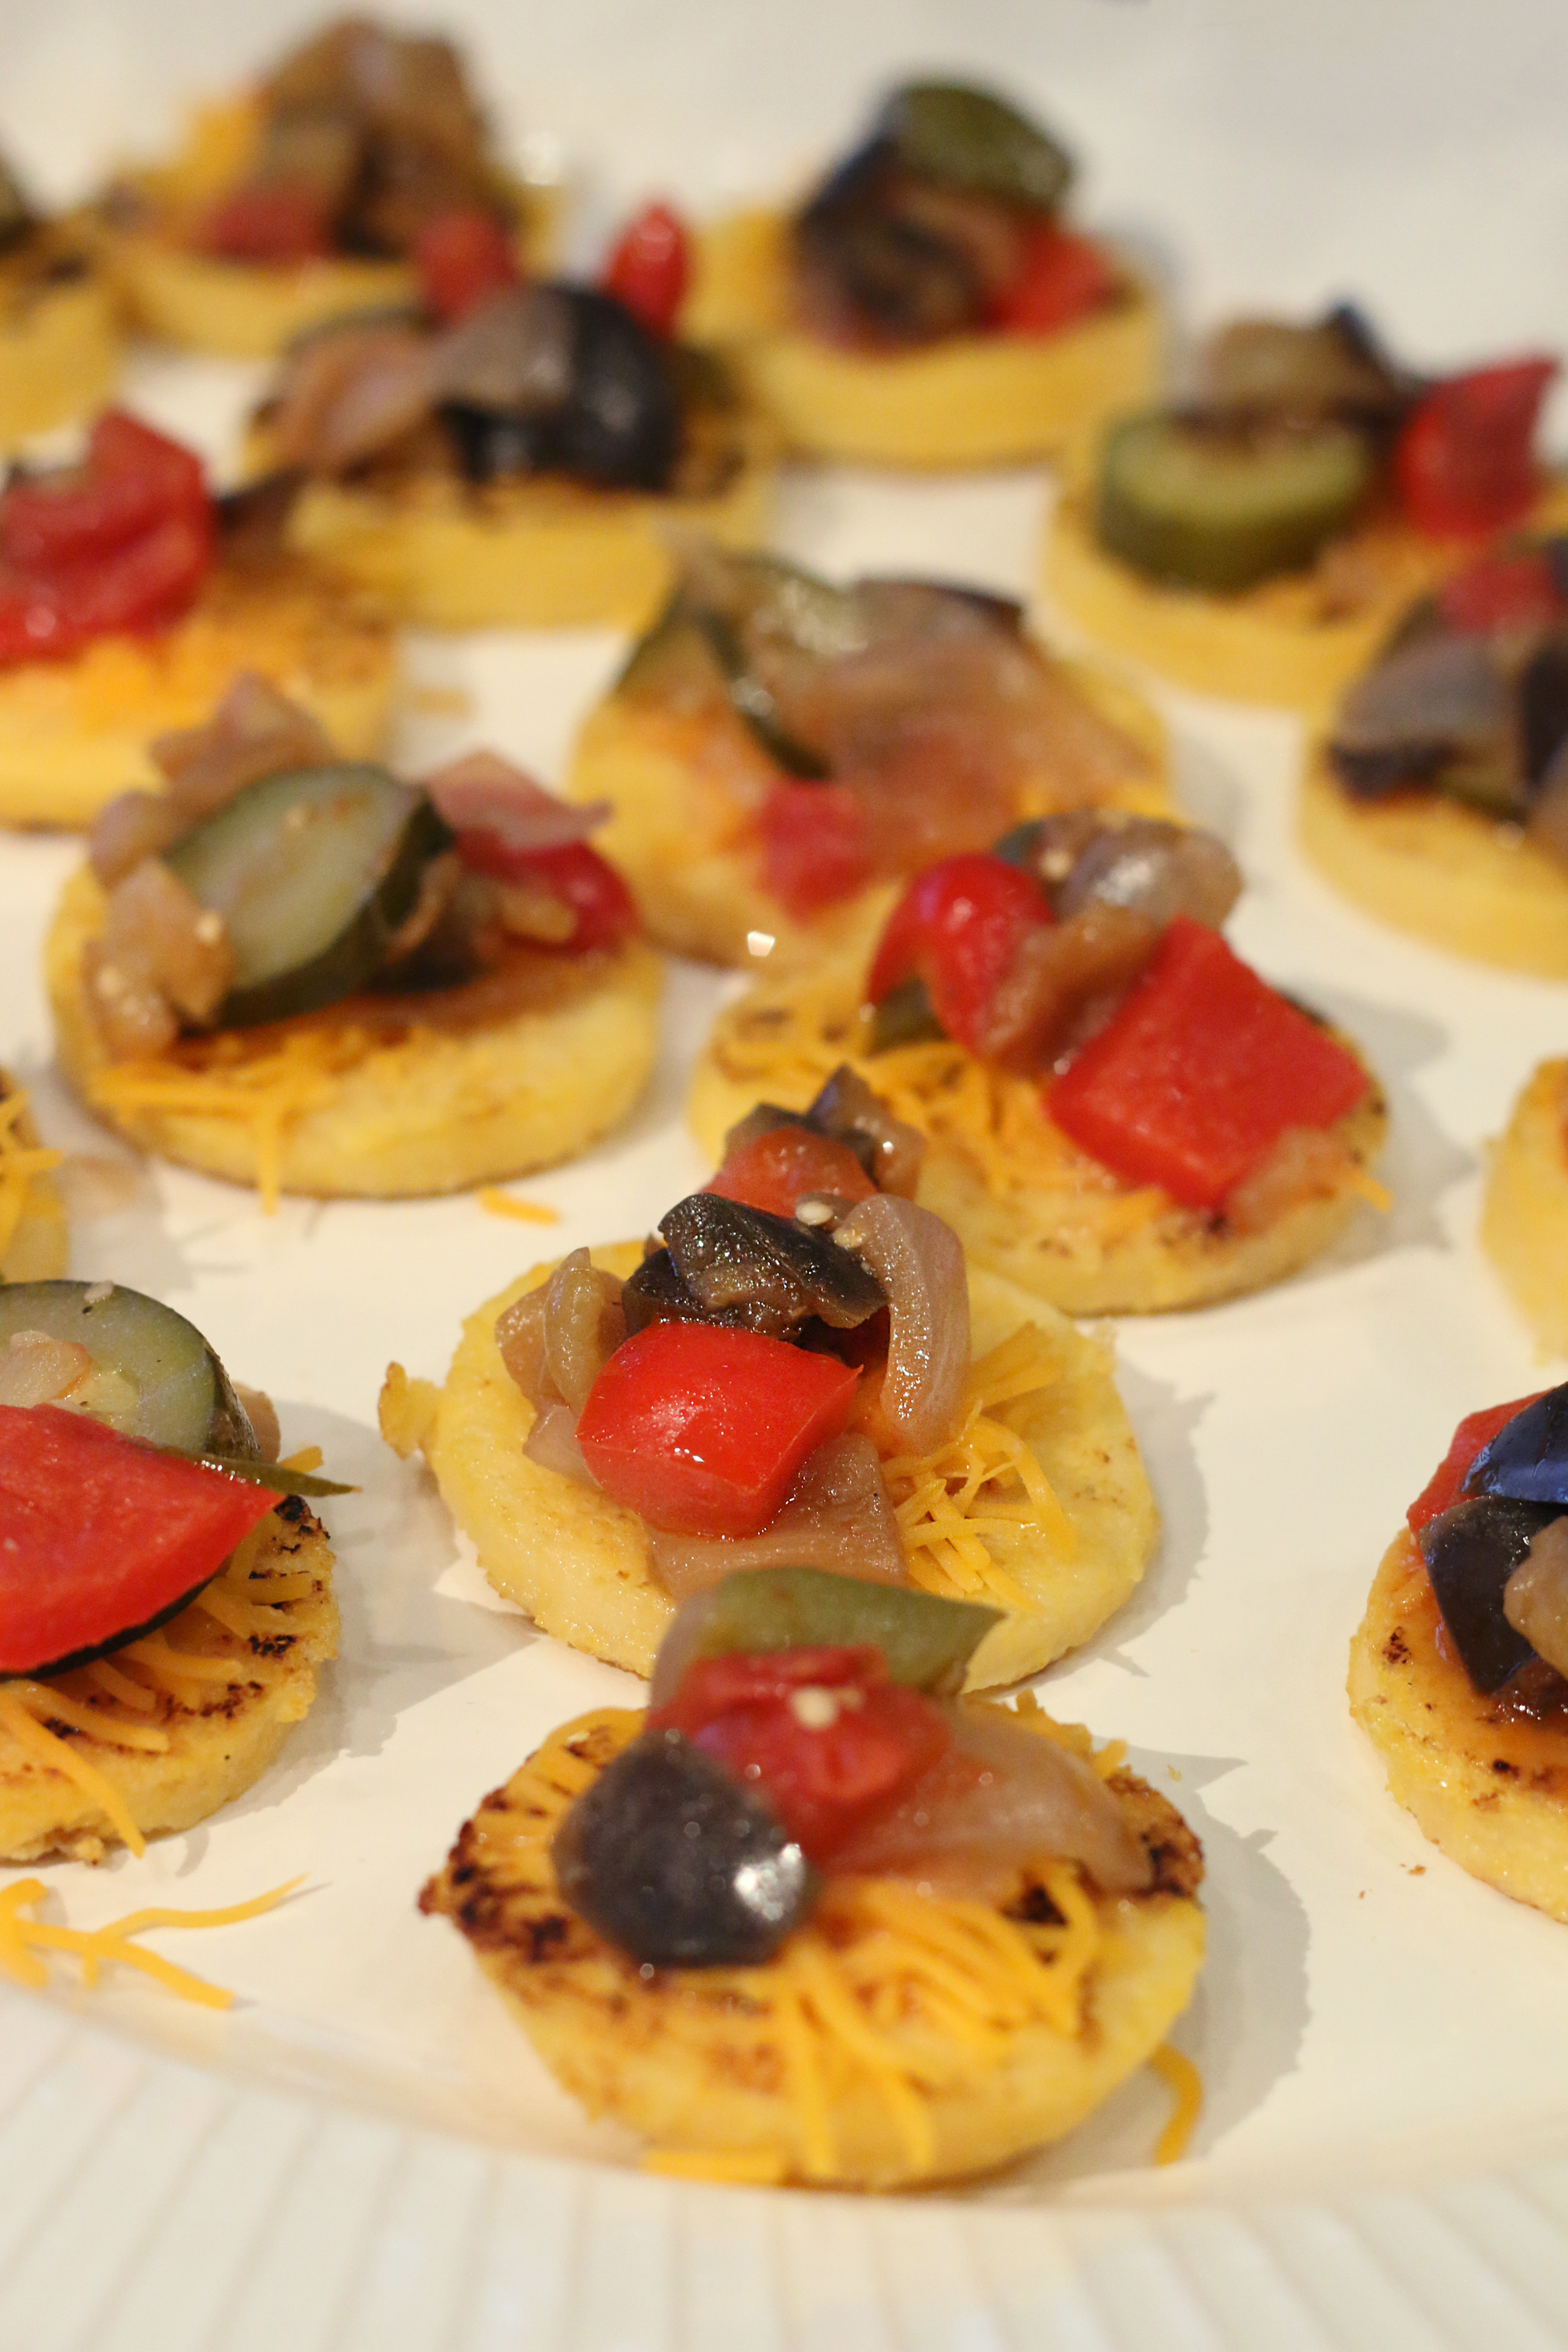 Cheddar Polenta Cakes topped with Ratatouille